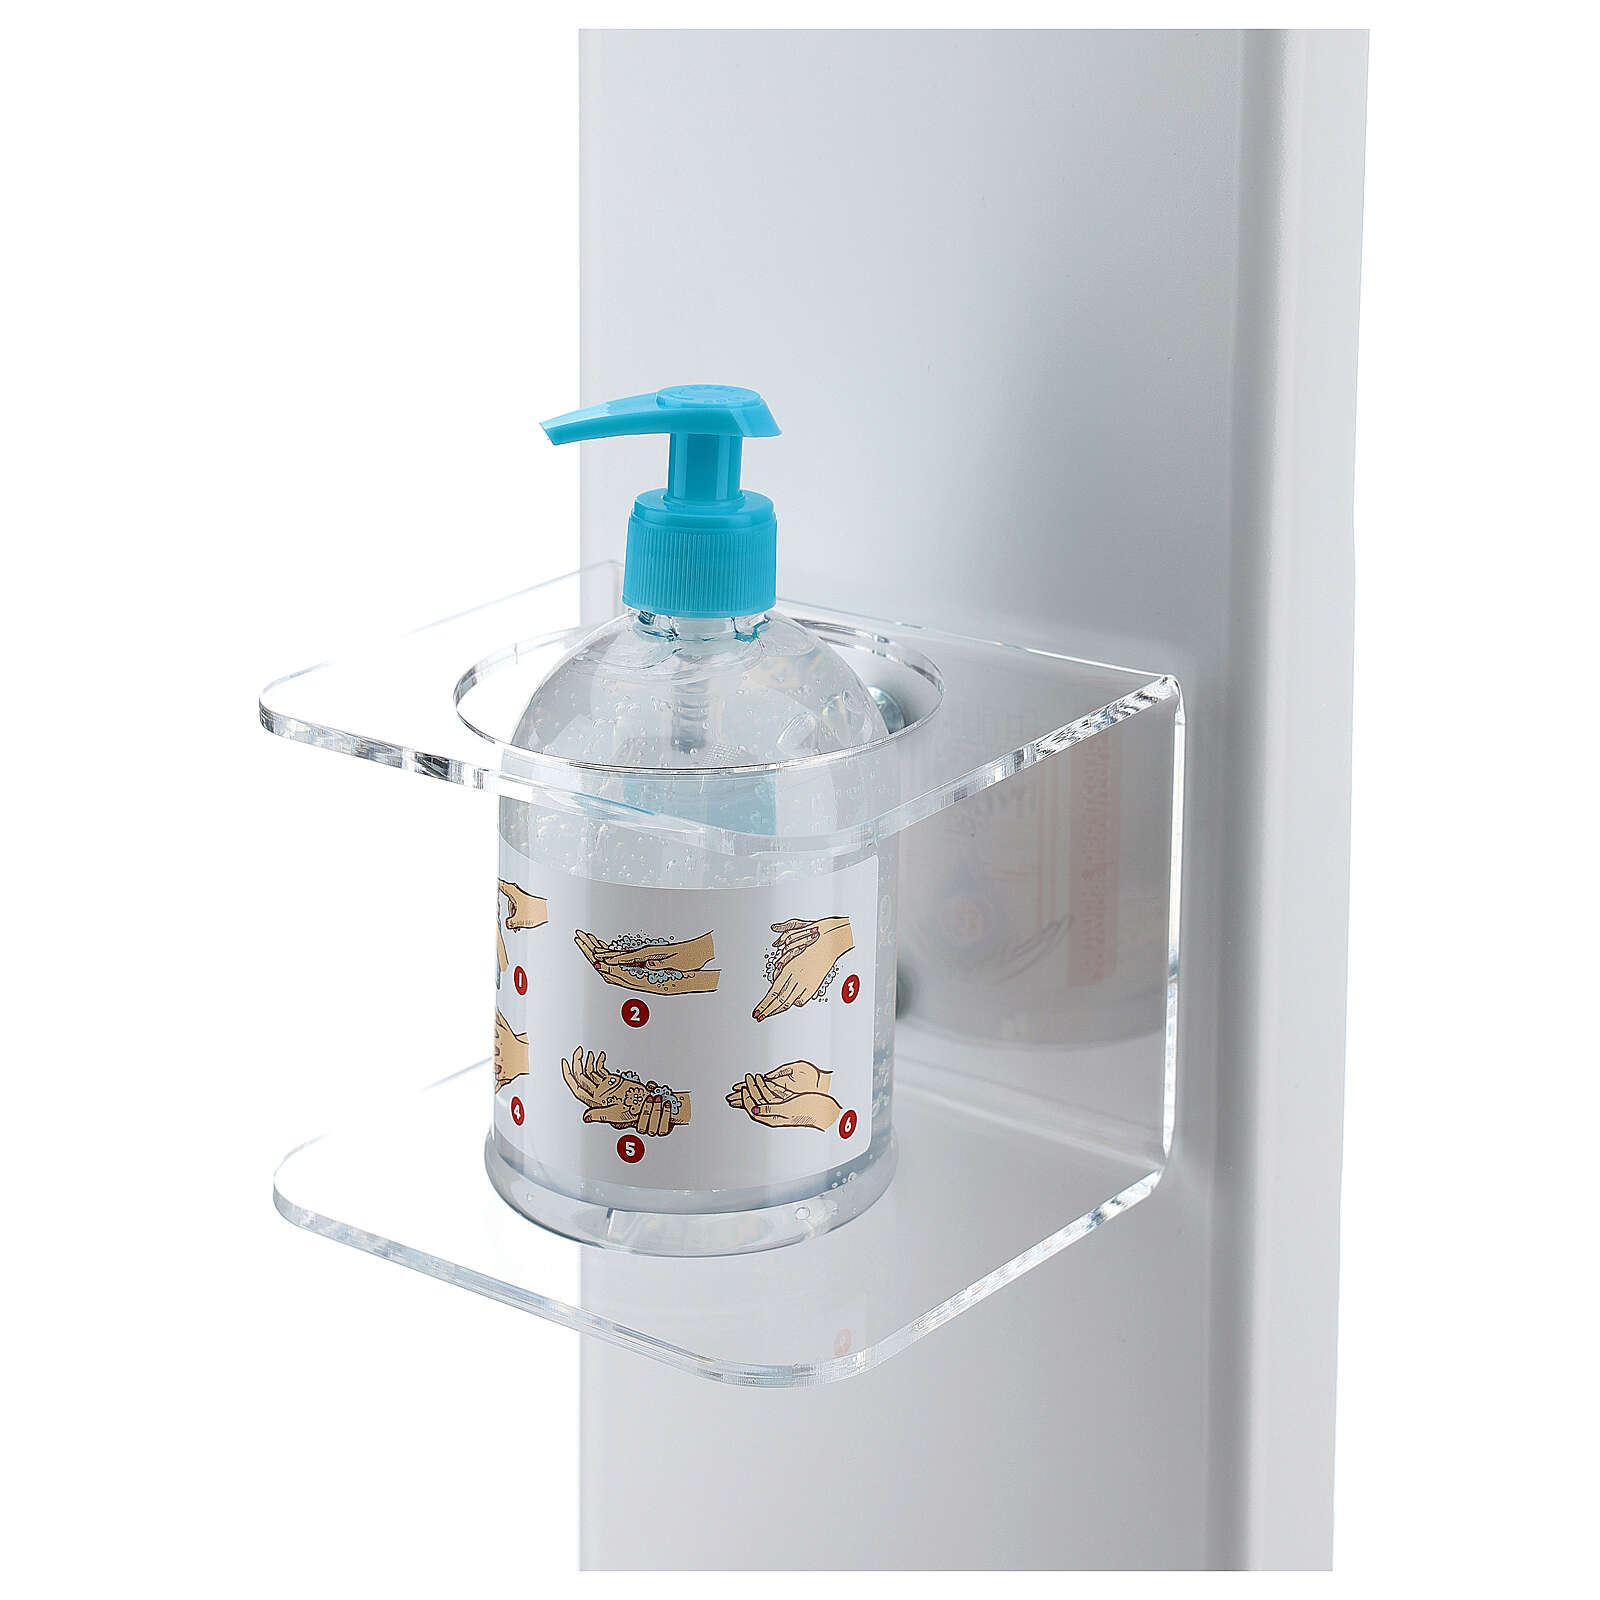 Hand disinfectant dispenser holder with gloves shelf and basket OUTSIDE 3